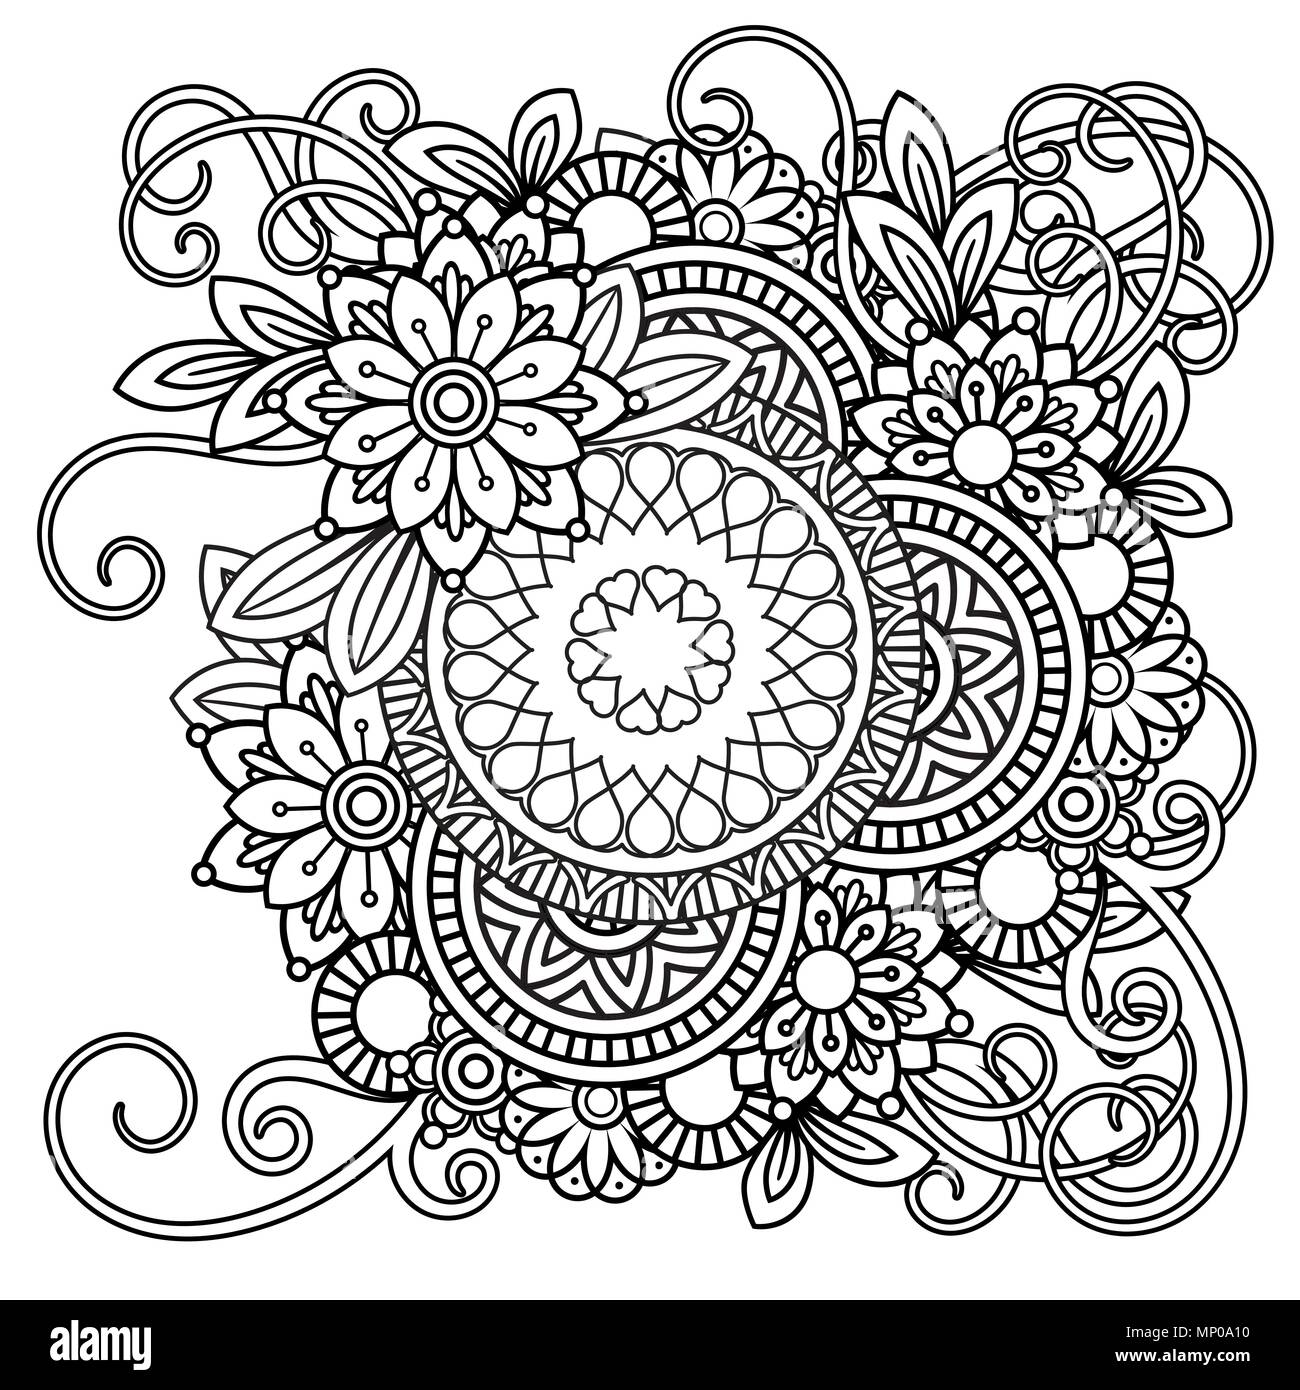 Adult coloring page with flowers pattern. Black and white doodle ...